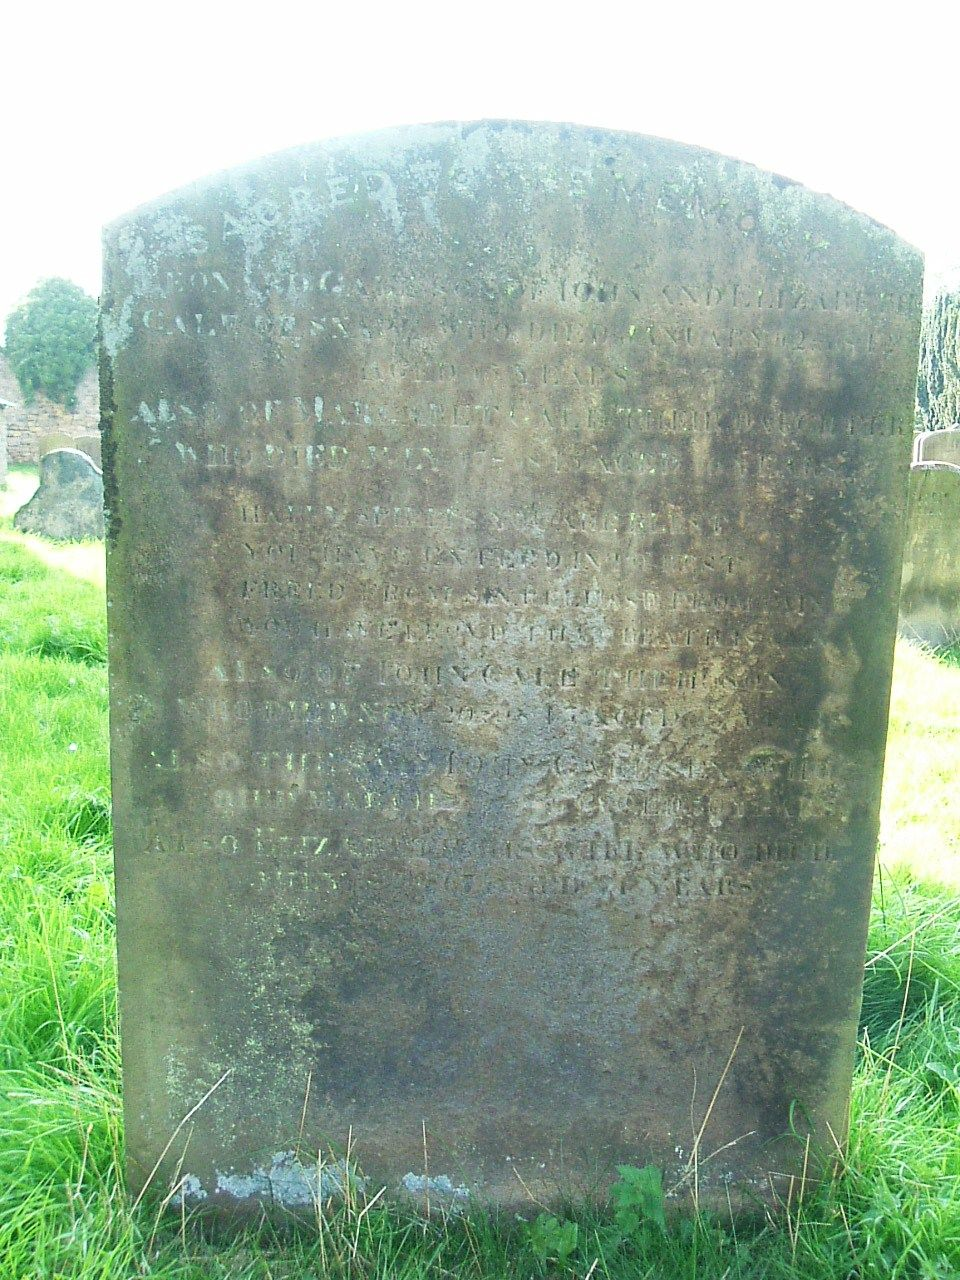 Well cemetery, North Yorkshire.  This is difficult to read but I think it is Leonard the son of John and Elizabeth Gale of Snape died 22 Jan 1812 aged 15 and also Margaret his sister died 17 July 1815 aged 16.  Also their parents John died ? and Elizabeth. died 1857 others?